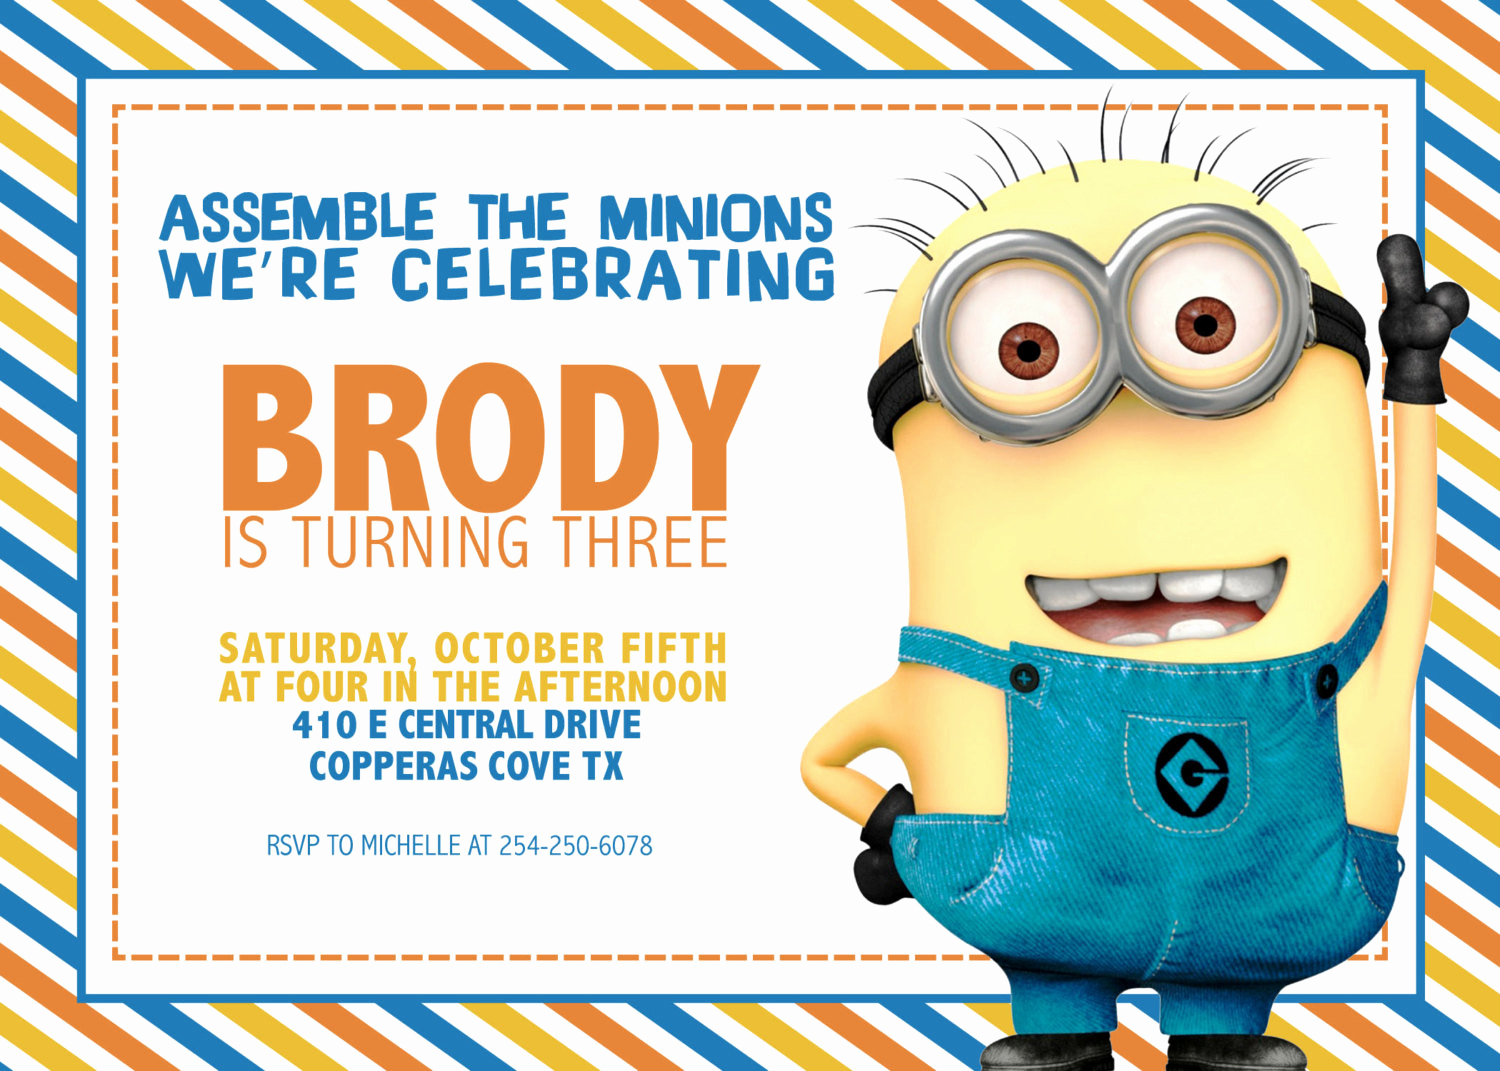 Minions Birthday Party Invitation Inspirational Free Printable Minion Birthday Party Invitations Ideas